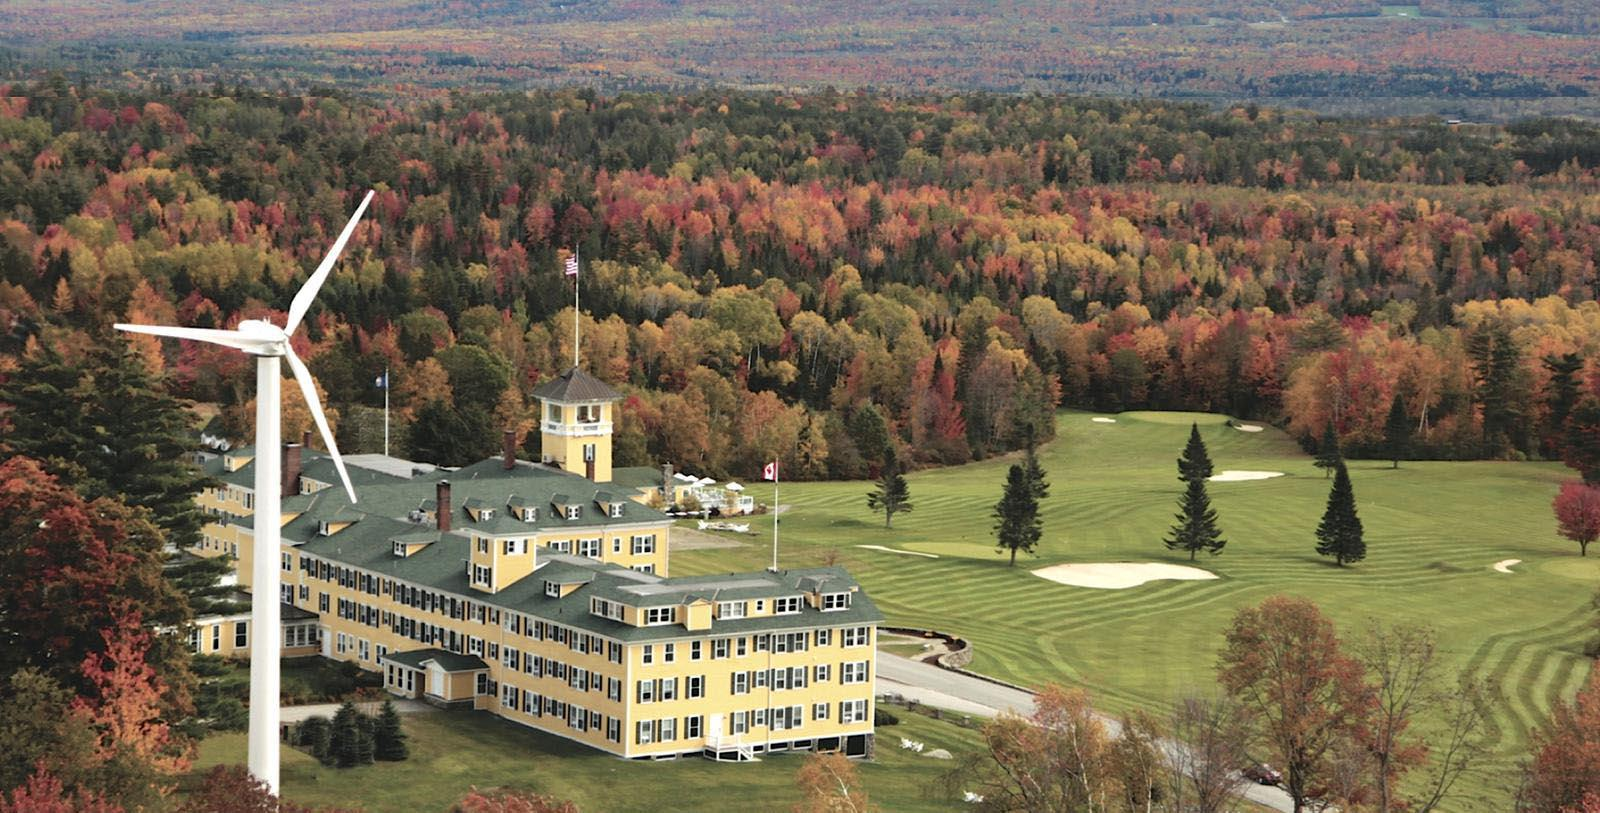 Image of Hotel Exterior & Golf Course, Mountain View Grand Resort & Spa in Whitefield, New Hampshire, 1865, Member of Historic Hotels of America, Special Offers, Discounted Rates, Families, Romantic Escape, Honeymoons, Anniversaries, Reunions